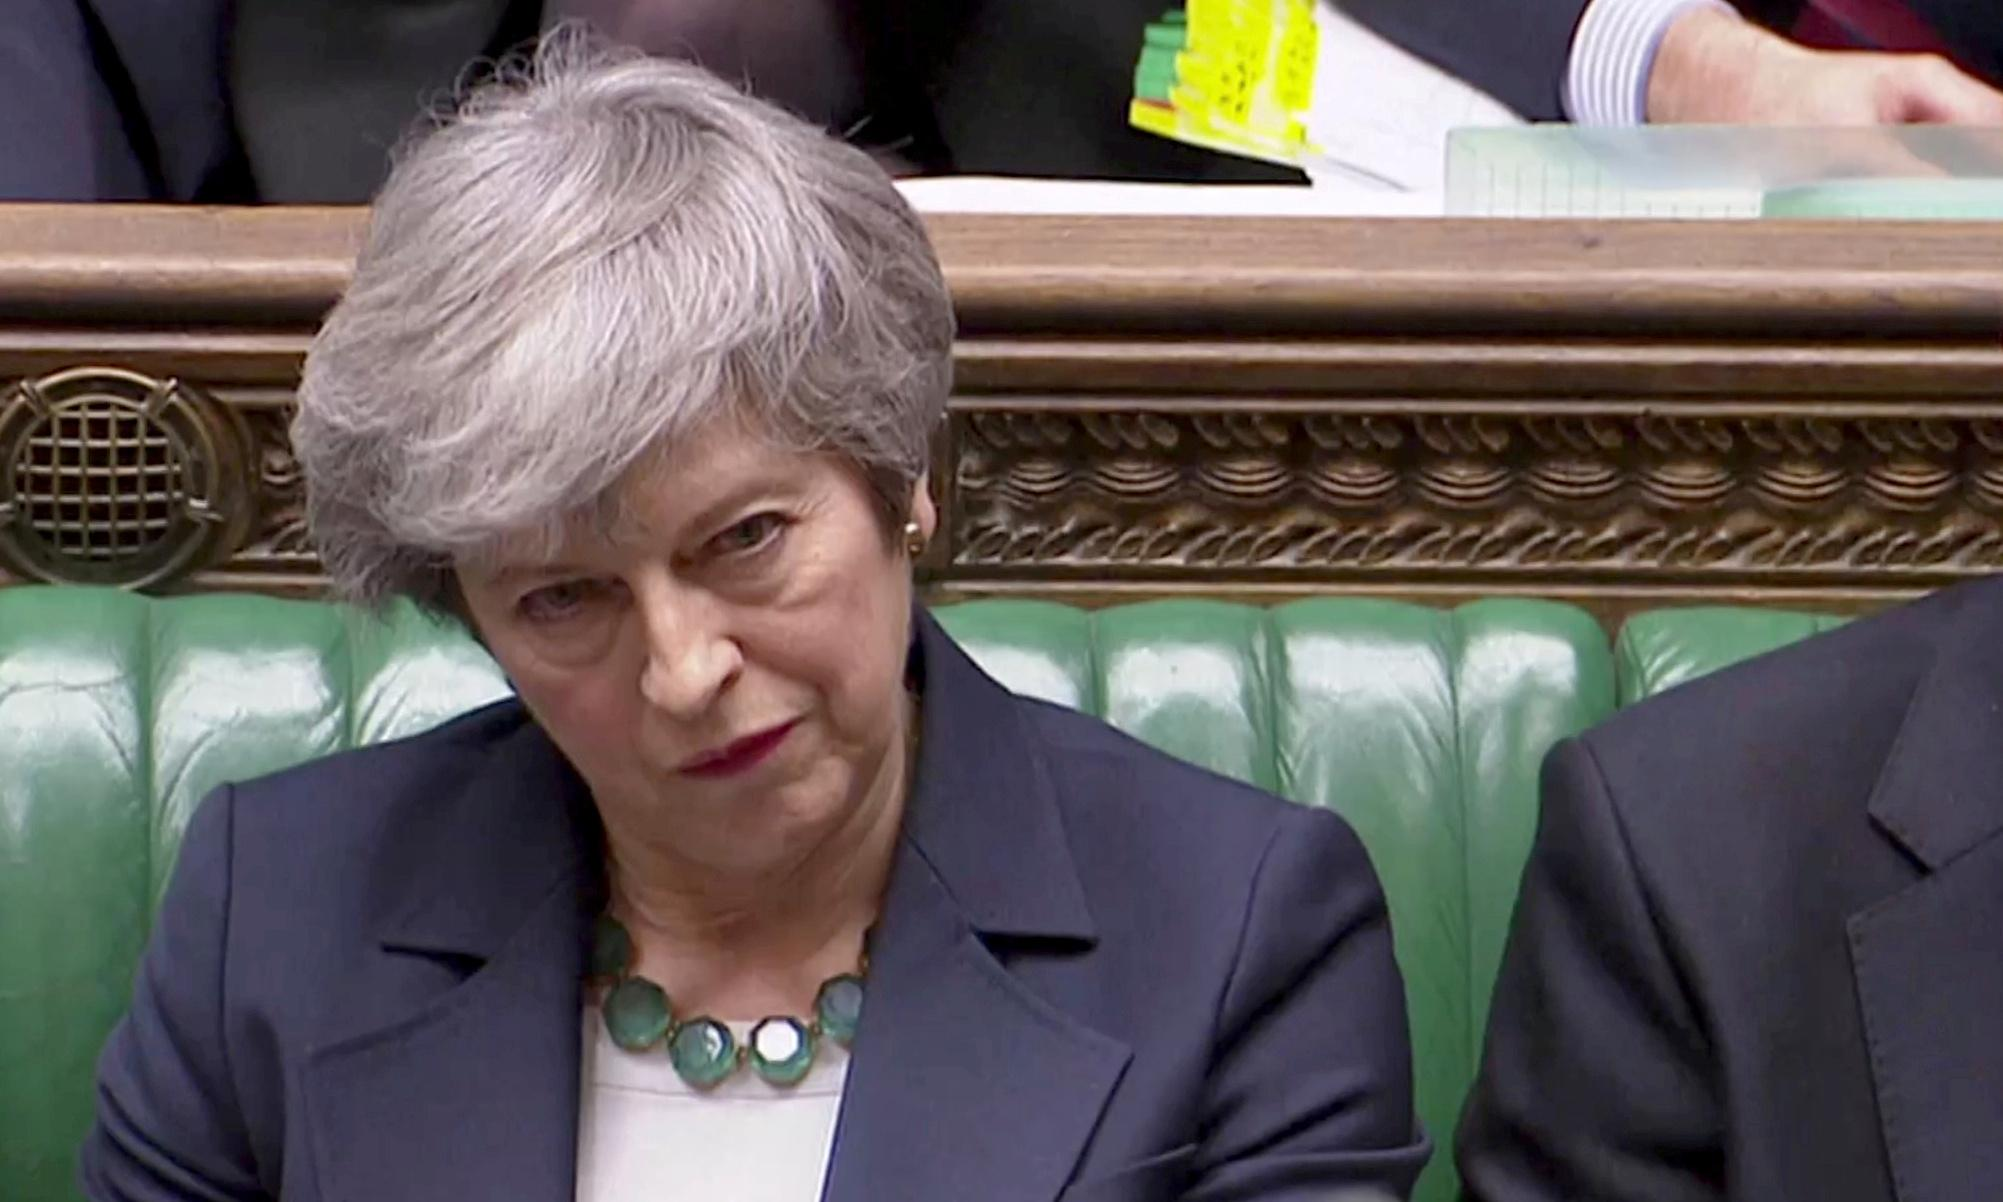 The Guardian view on Theresa May's Brexit deal: third time unlucky